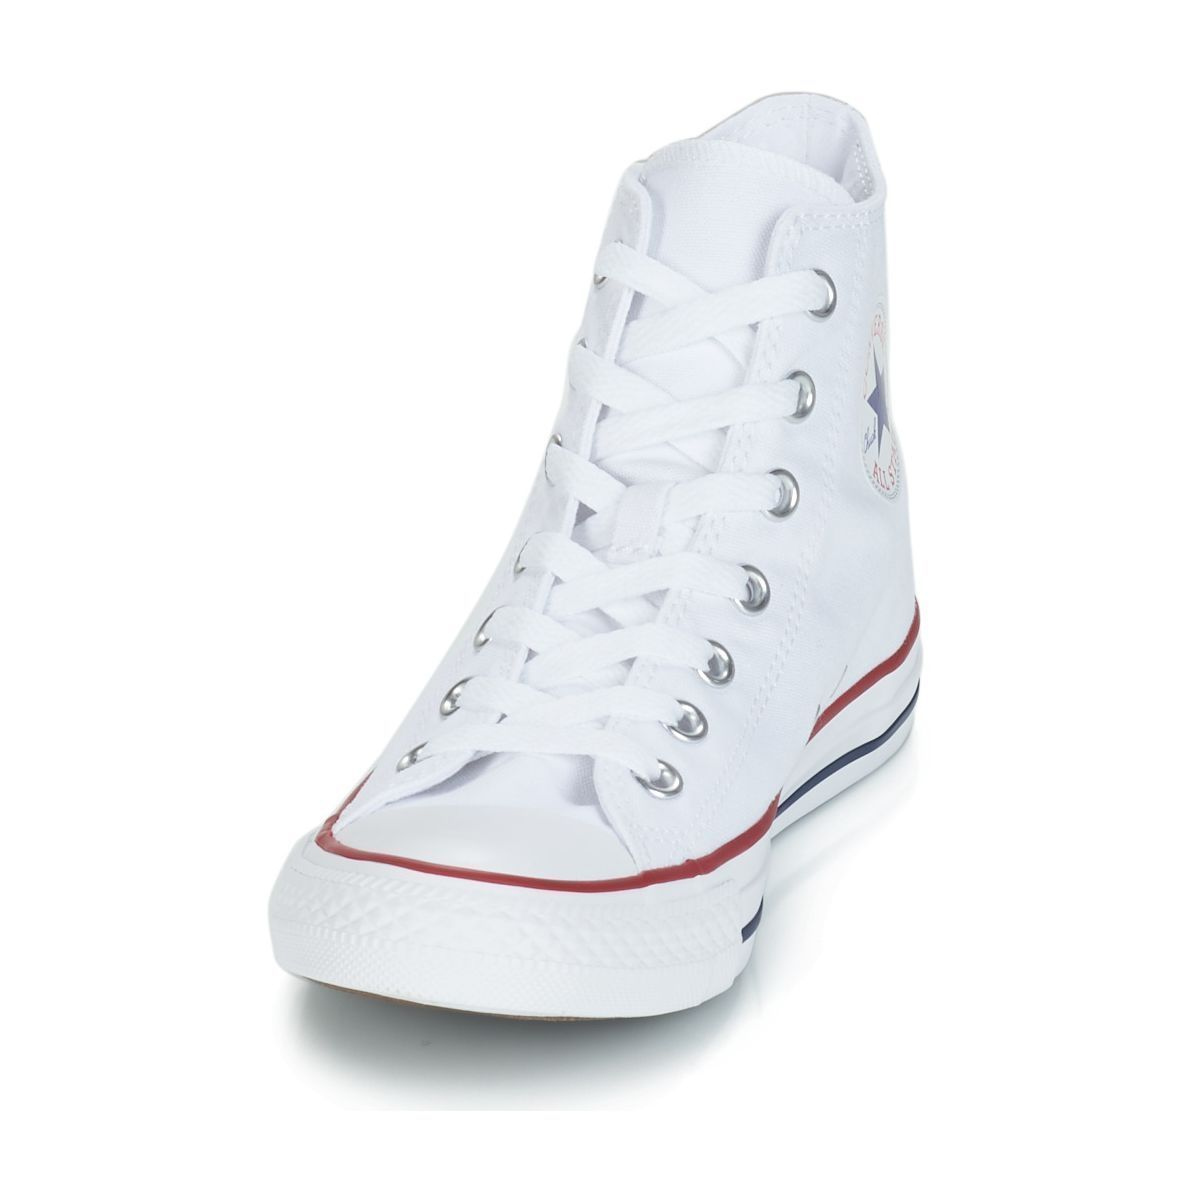 Converse fille ctas all star hi blanc1629802_4